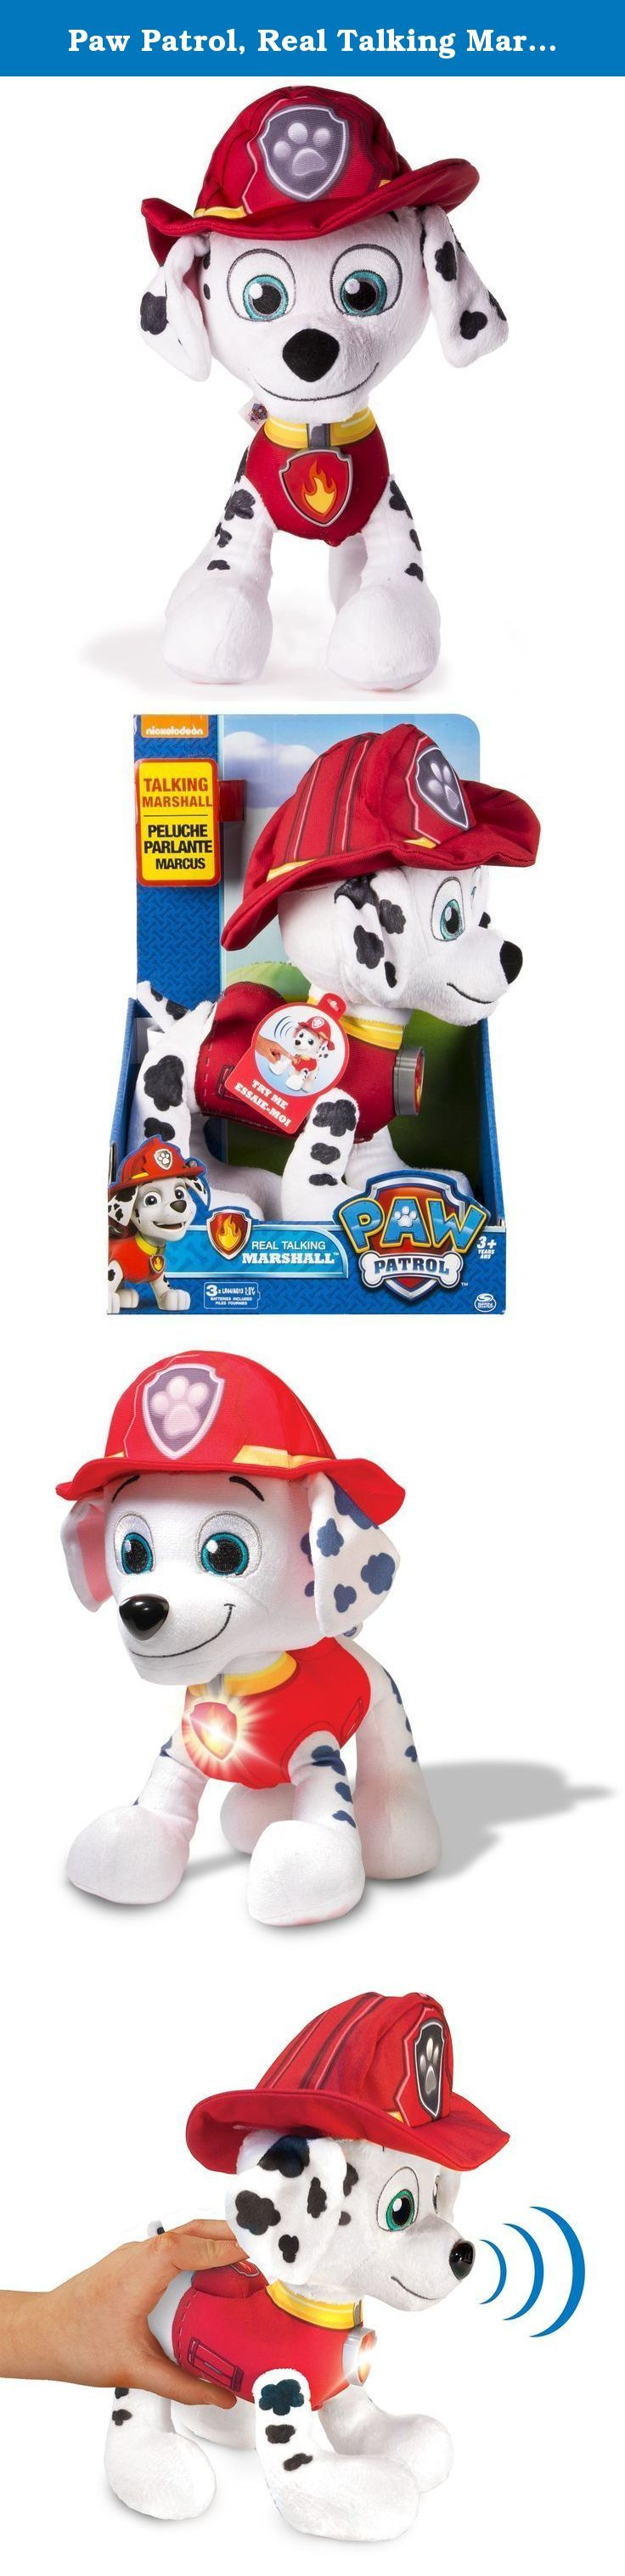 Paw Patrol, Real Talking Marshall Plush. Paw Patrol is on a Roll! Now you can bring home your favourite Paw Patrol Pup with Real Talking Marshall! Just squeeze Marshall's badge to hear phrases directly from the Paw Patrol show! Perfect for bedtime or playtime Marshall comes with you wherever you go and helps you on all of your Paw Patrol adventures throughout the day! Each Real Talking plush Pup comes with a badge, their Paw Patrol vest and hat. Collect all your favorite pups for more Paw...